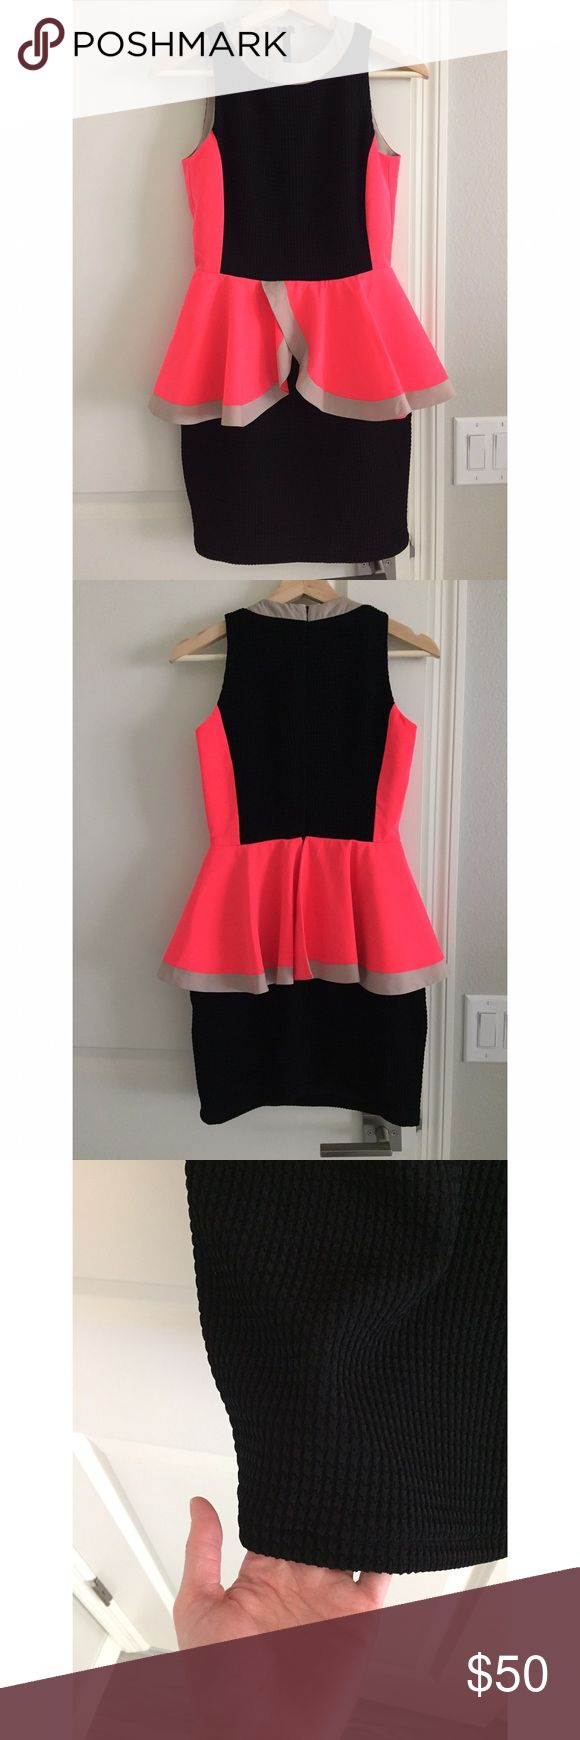 One Of A Kind Peplum Dress, sz. XS Adorable dress, perfect for a girls' night out or date night, handmade by yours truly 🤓 which means this one is one-of-a-kind unique! Hot pink and beige polyester paired up with black structured pique fabric. Hand wash strongly recommended. Never worn except for trying on! Listed as Zara for visibility. Zara Dresses Mini